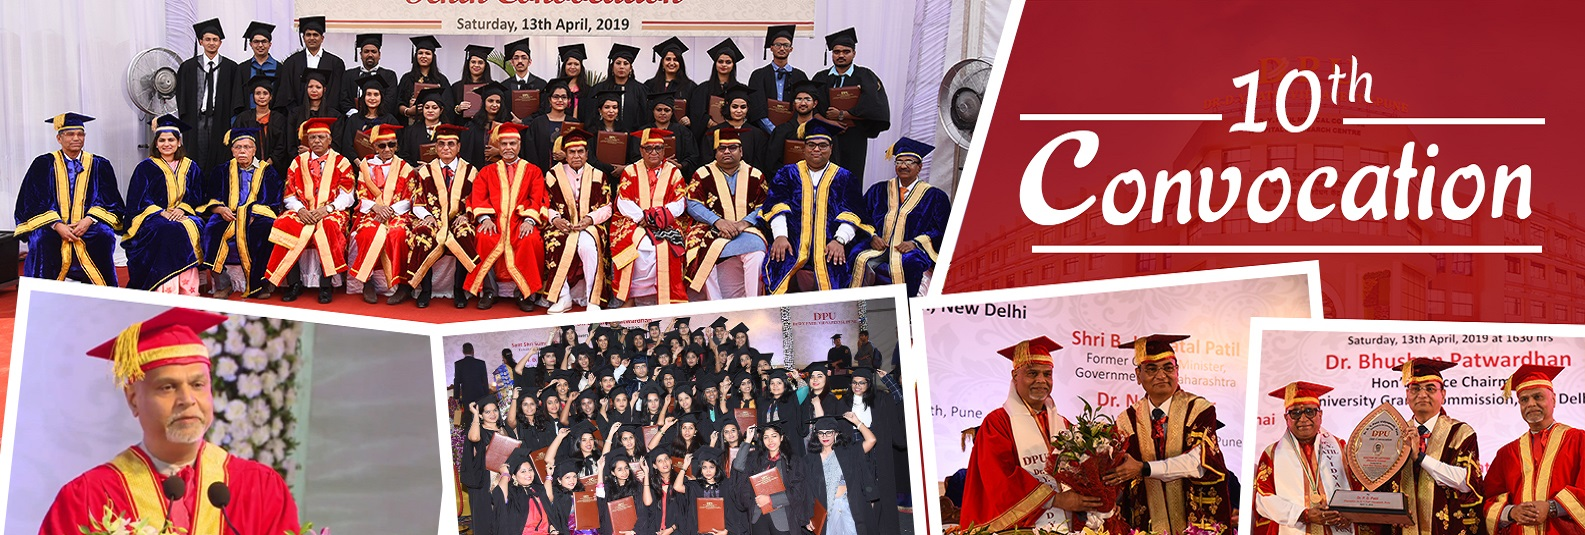 convocation april 2019